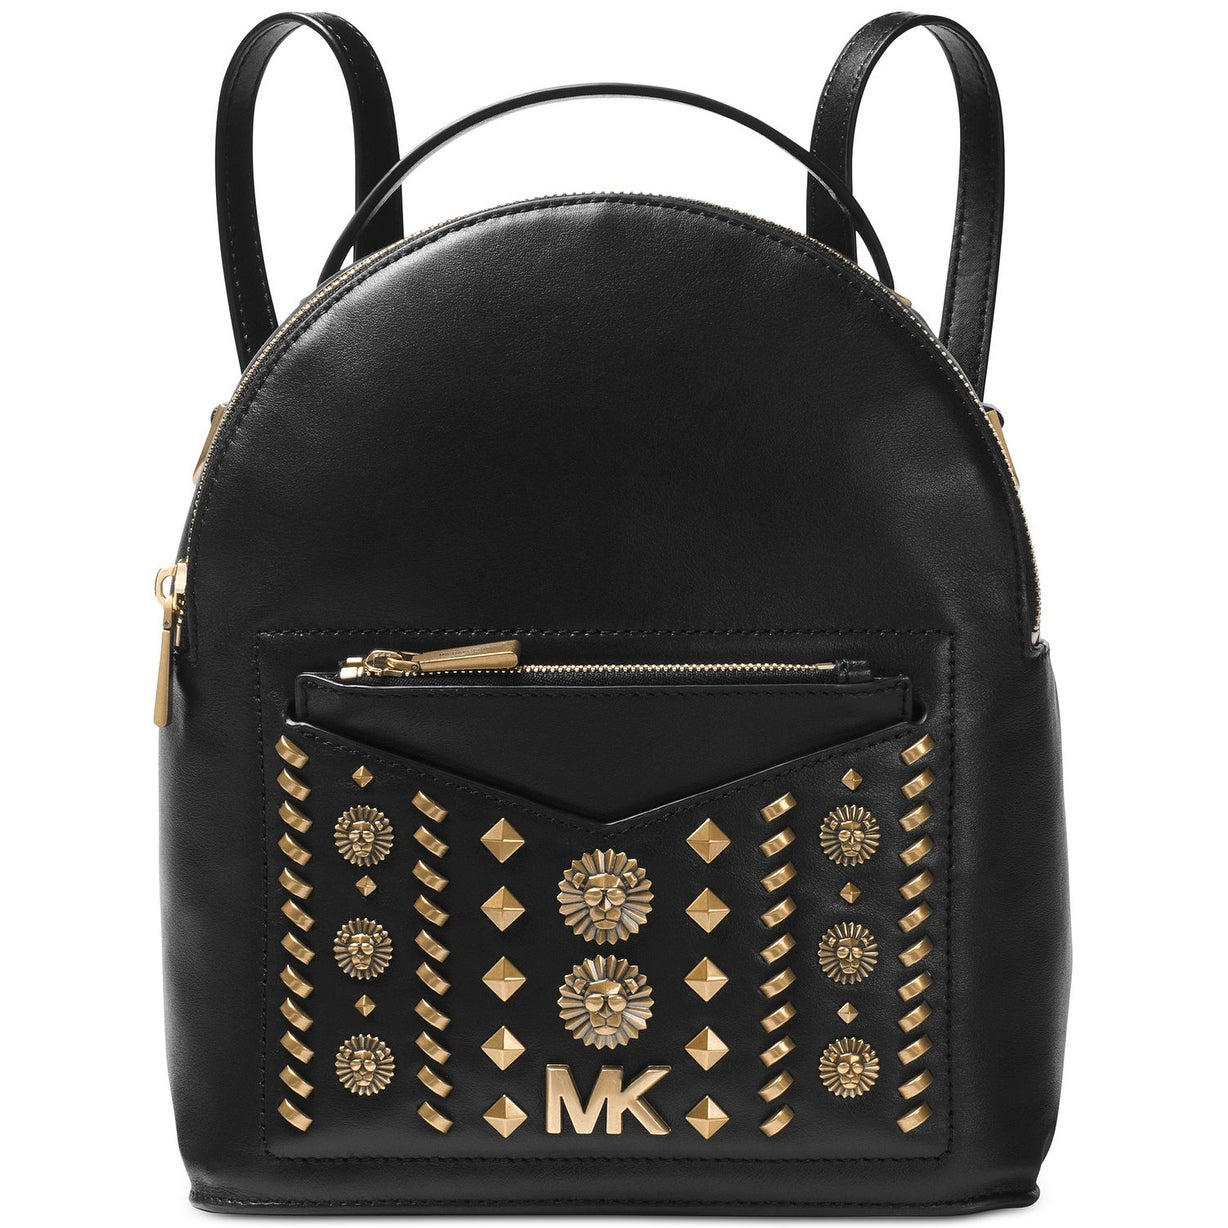 MICHAEL Michael Kors Jessa Small Studded Leather Convertible Backpack Black - One Size